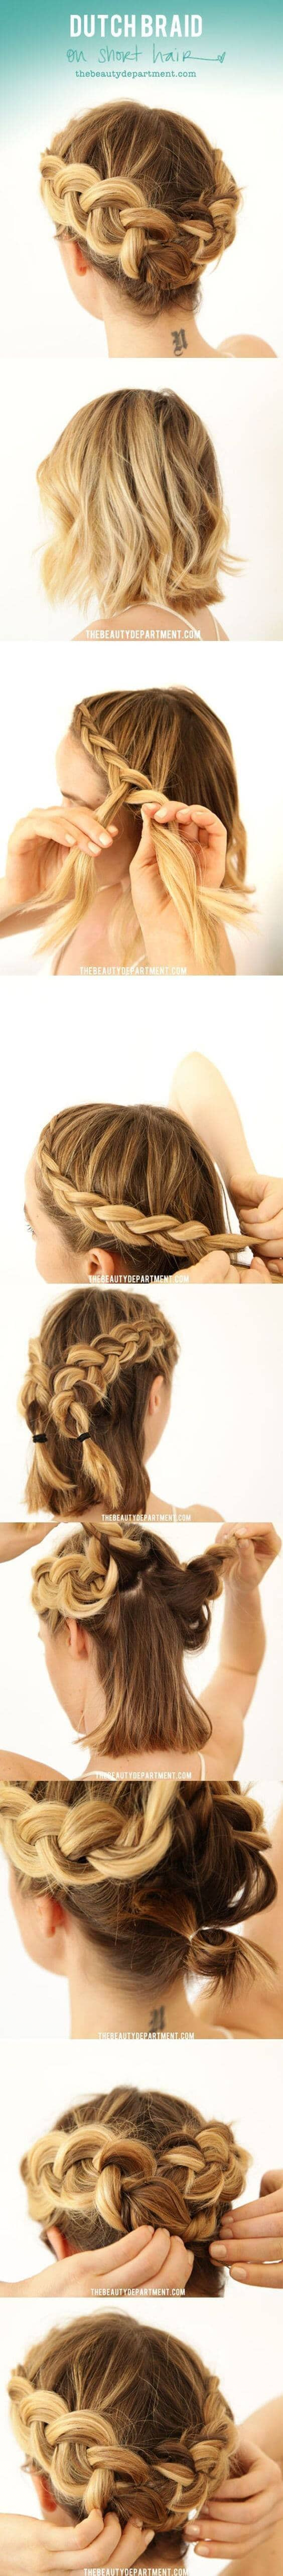 Fully Braided Crown Tutorial